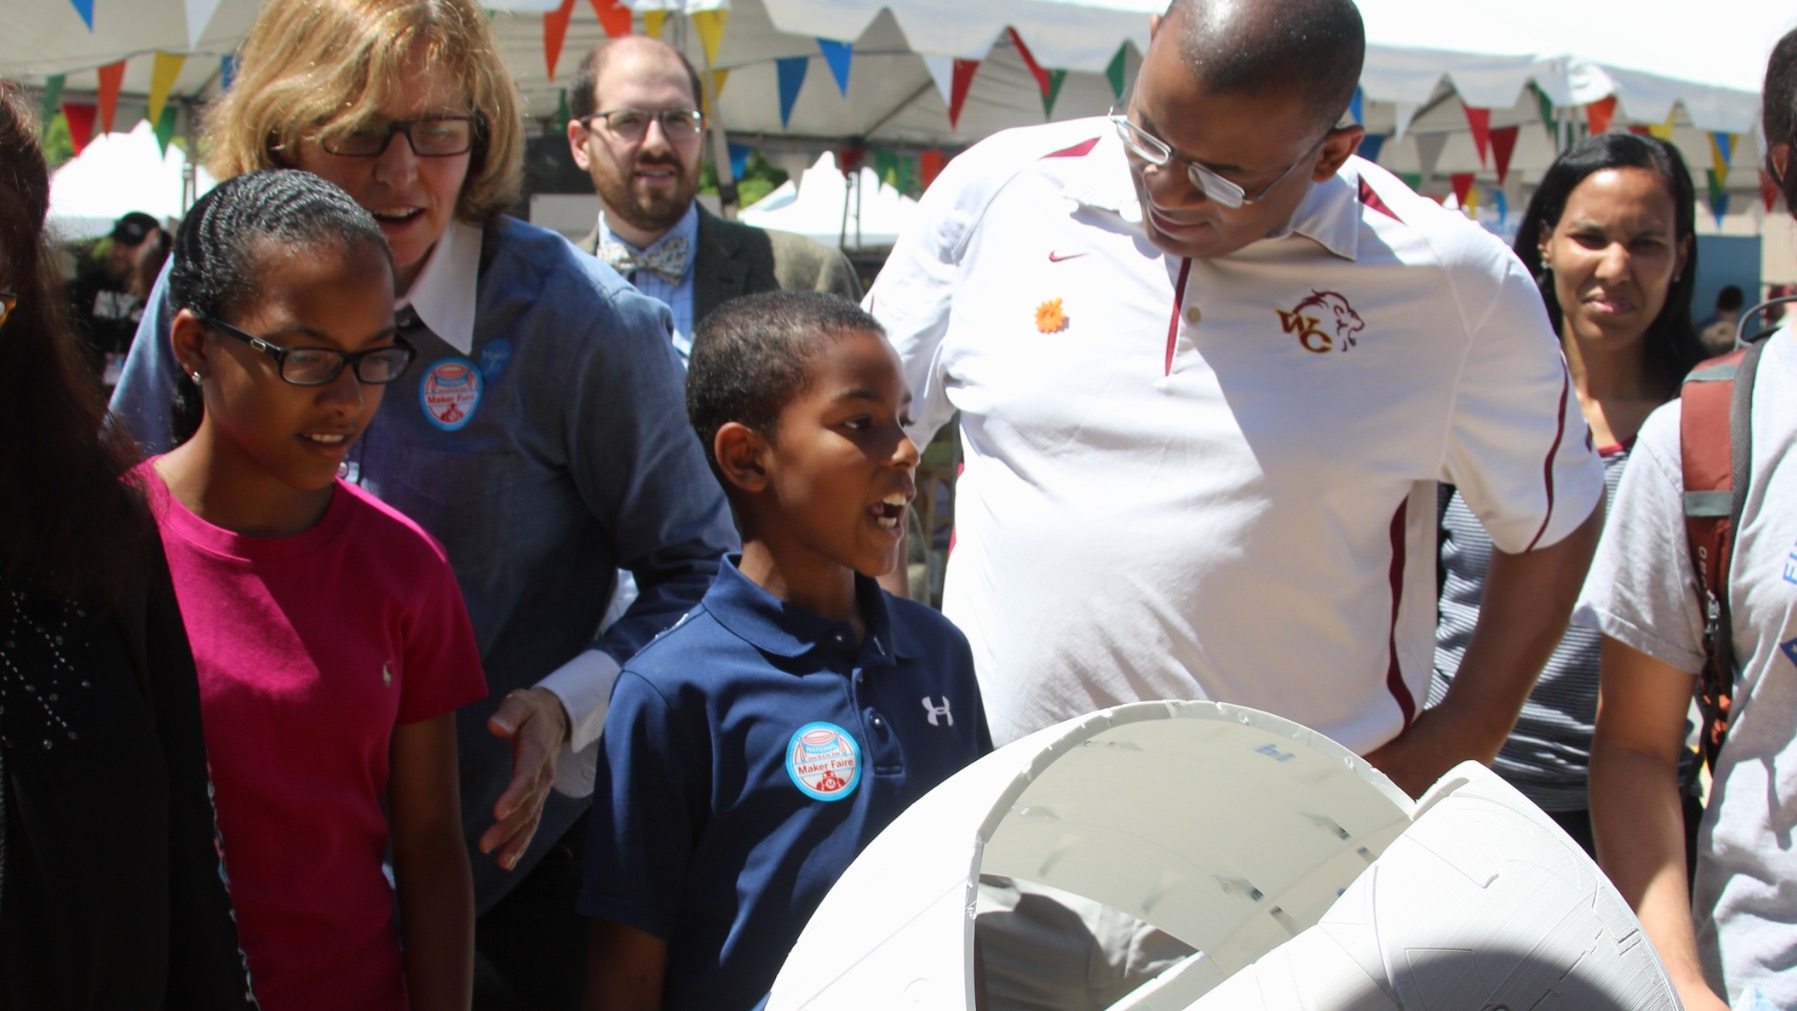 U.S. Chief Technology Officer Megan Smith and Secretary of Transportation Anthony Foxx examined a DIY-replica of the popular BB-8 robot during the National Maker Faire at University of the District of Columbia, June 18, 2016. (Photo Credit: Tyler Daniels)